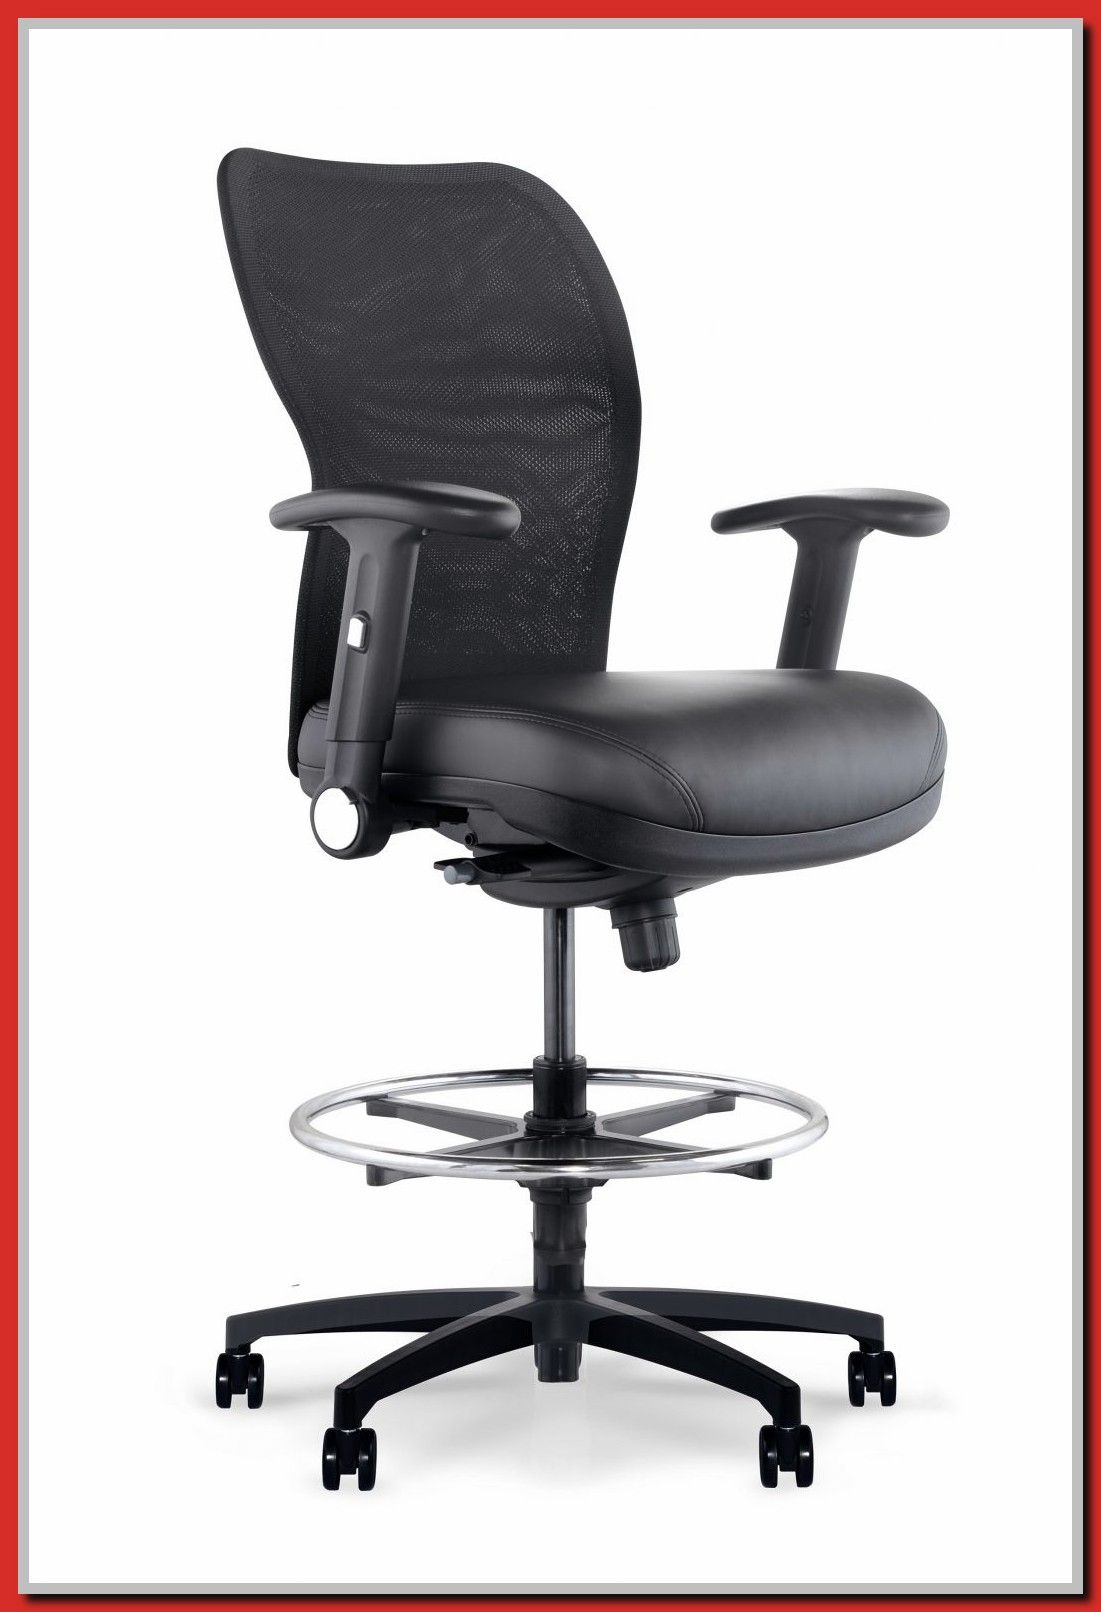 106 Reference Of Office Chair Bar Height In 2020 Office Chair Counter Height Office Chair Modern Office Chair